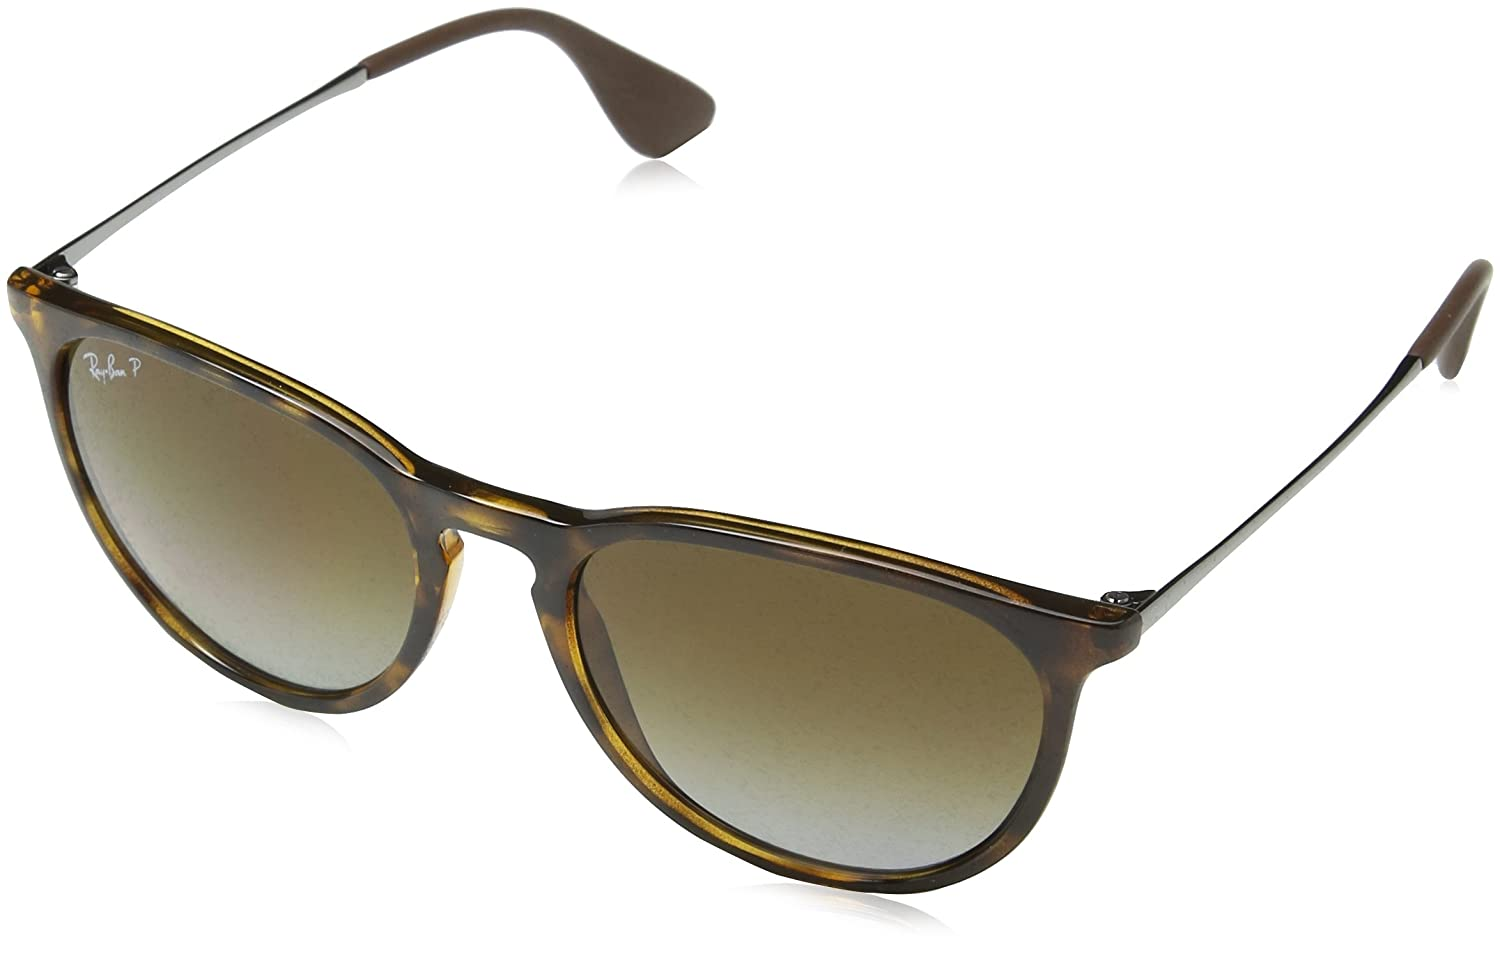 Ray Ban Erika Classic Havana Marrón degradada